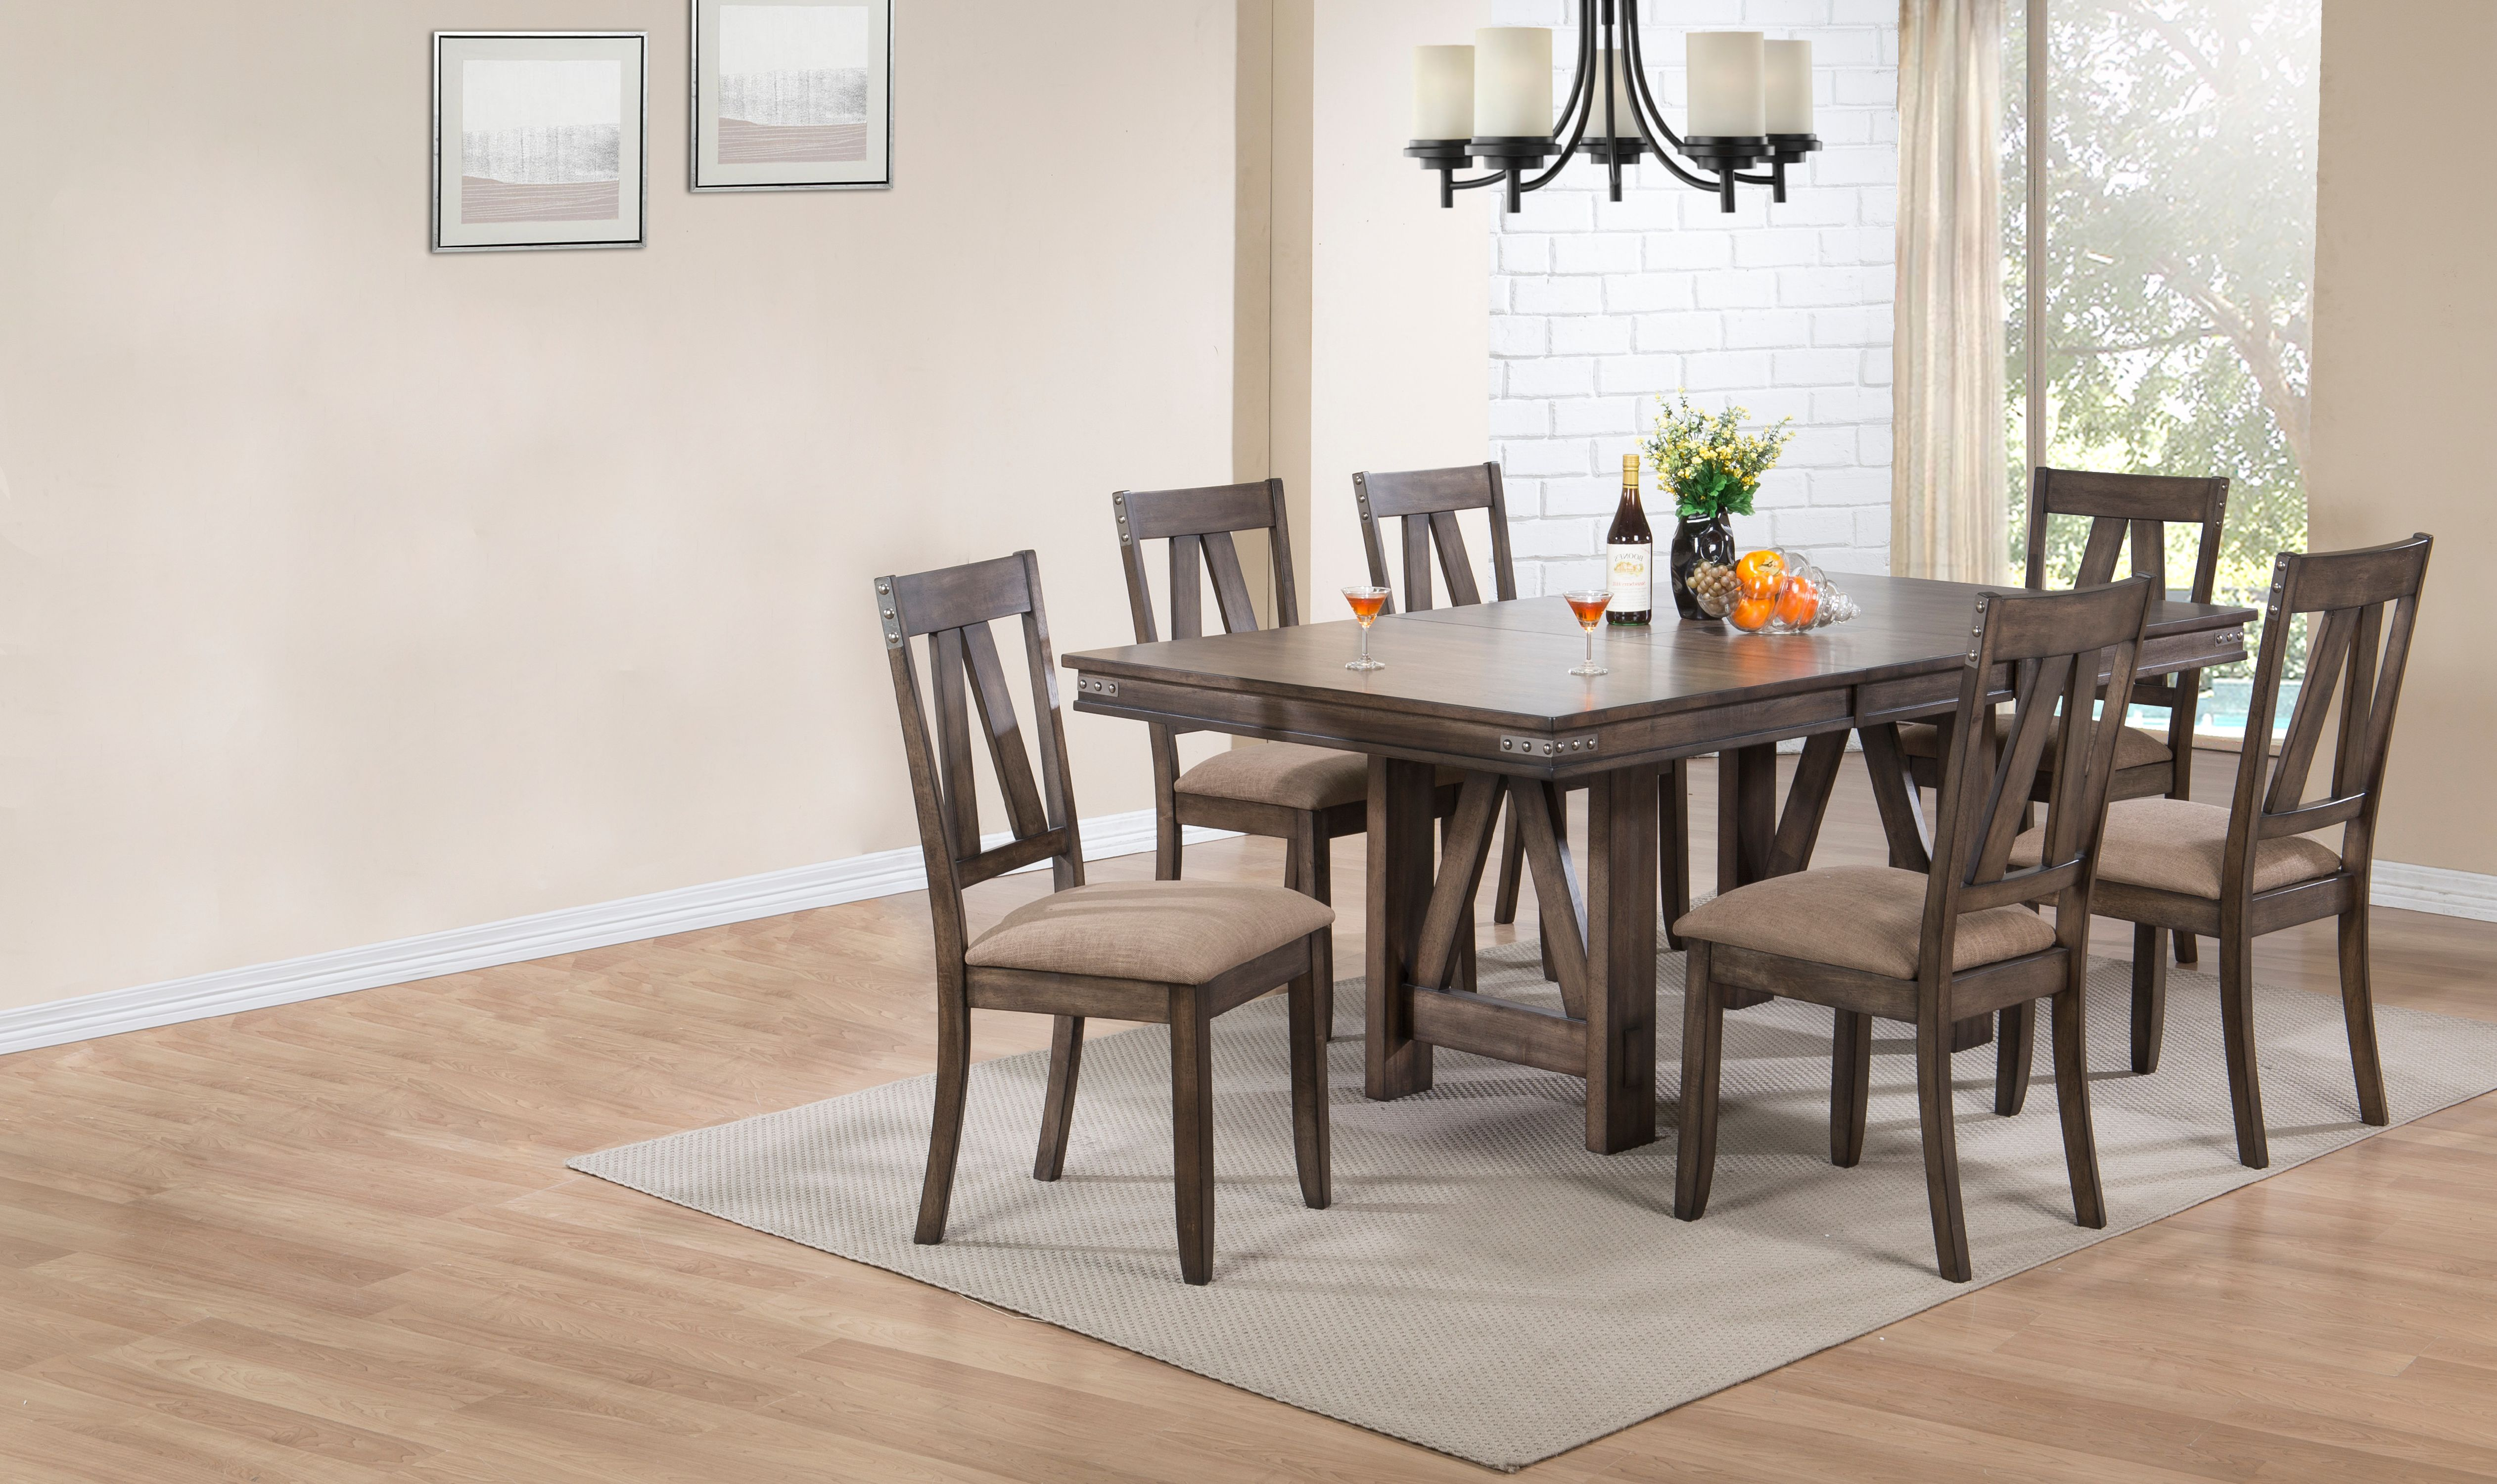 7 Piece Brown Wood Rectangle Dinette Dining Room Table & 6 Side Chairs Set by unknown